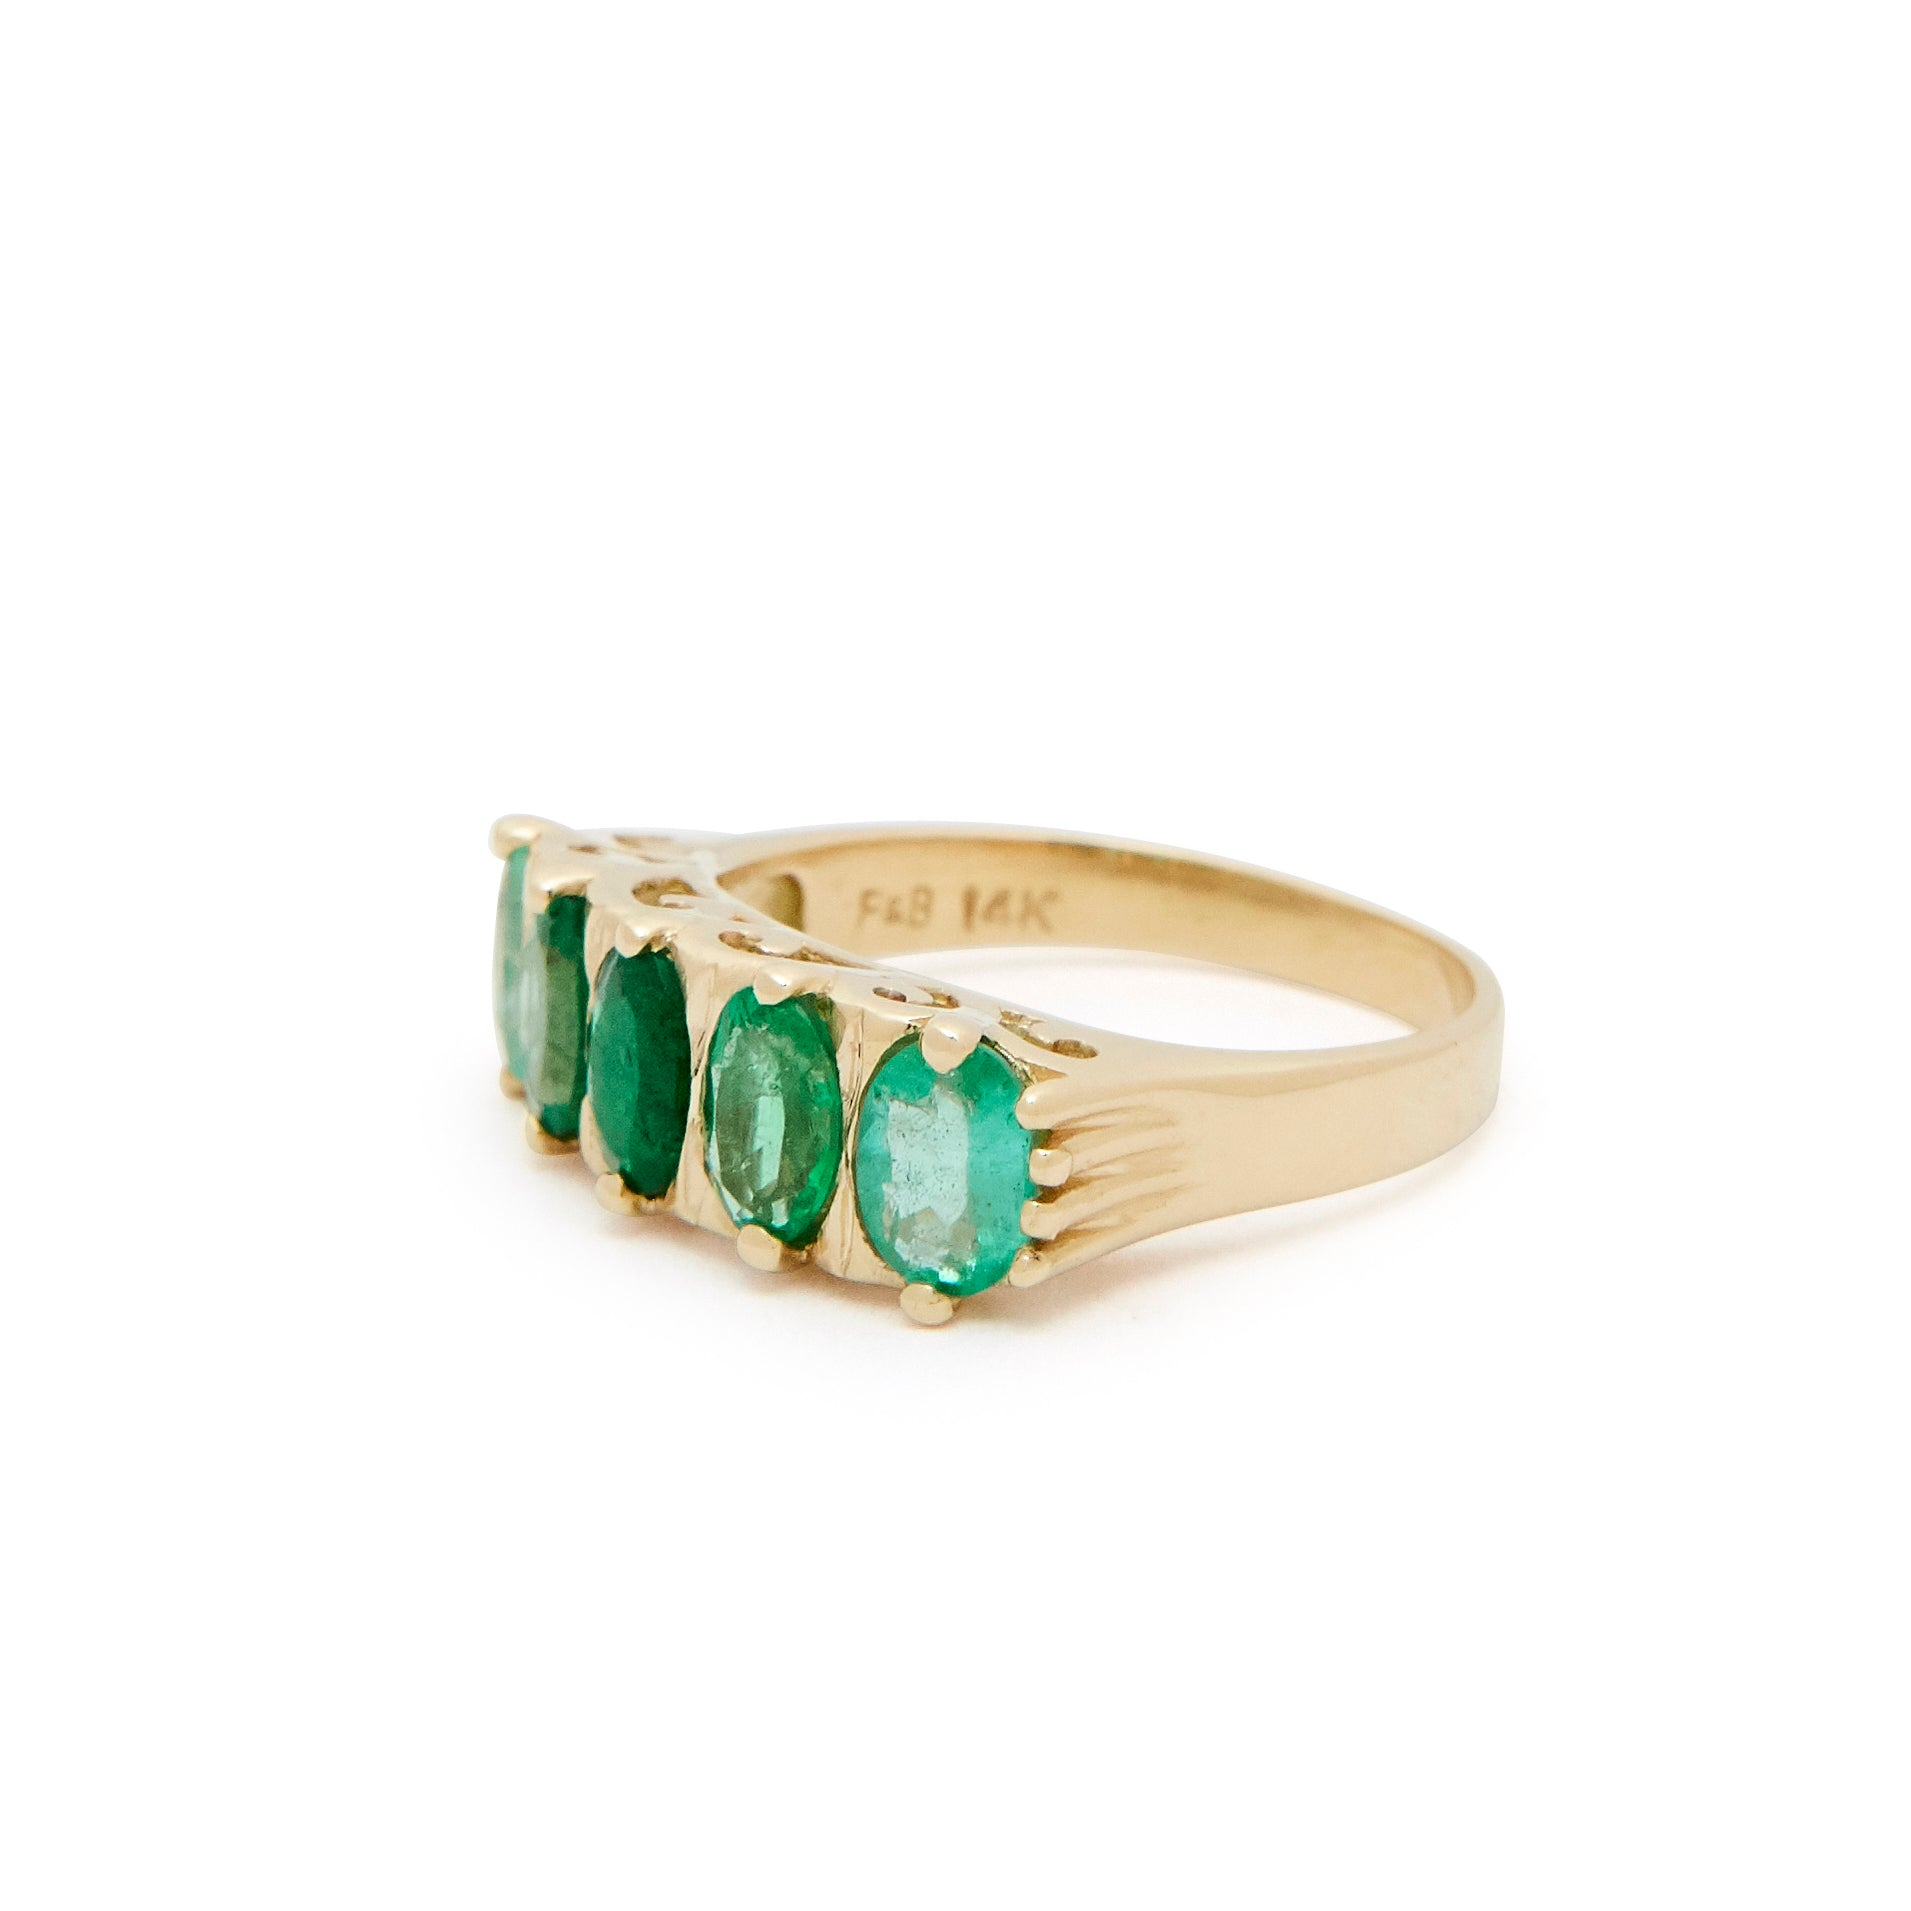 The F&B X Gemfields Emerald Ombre Ring